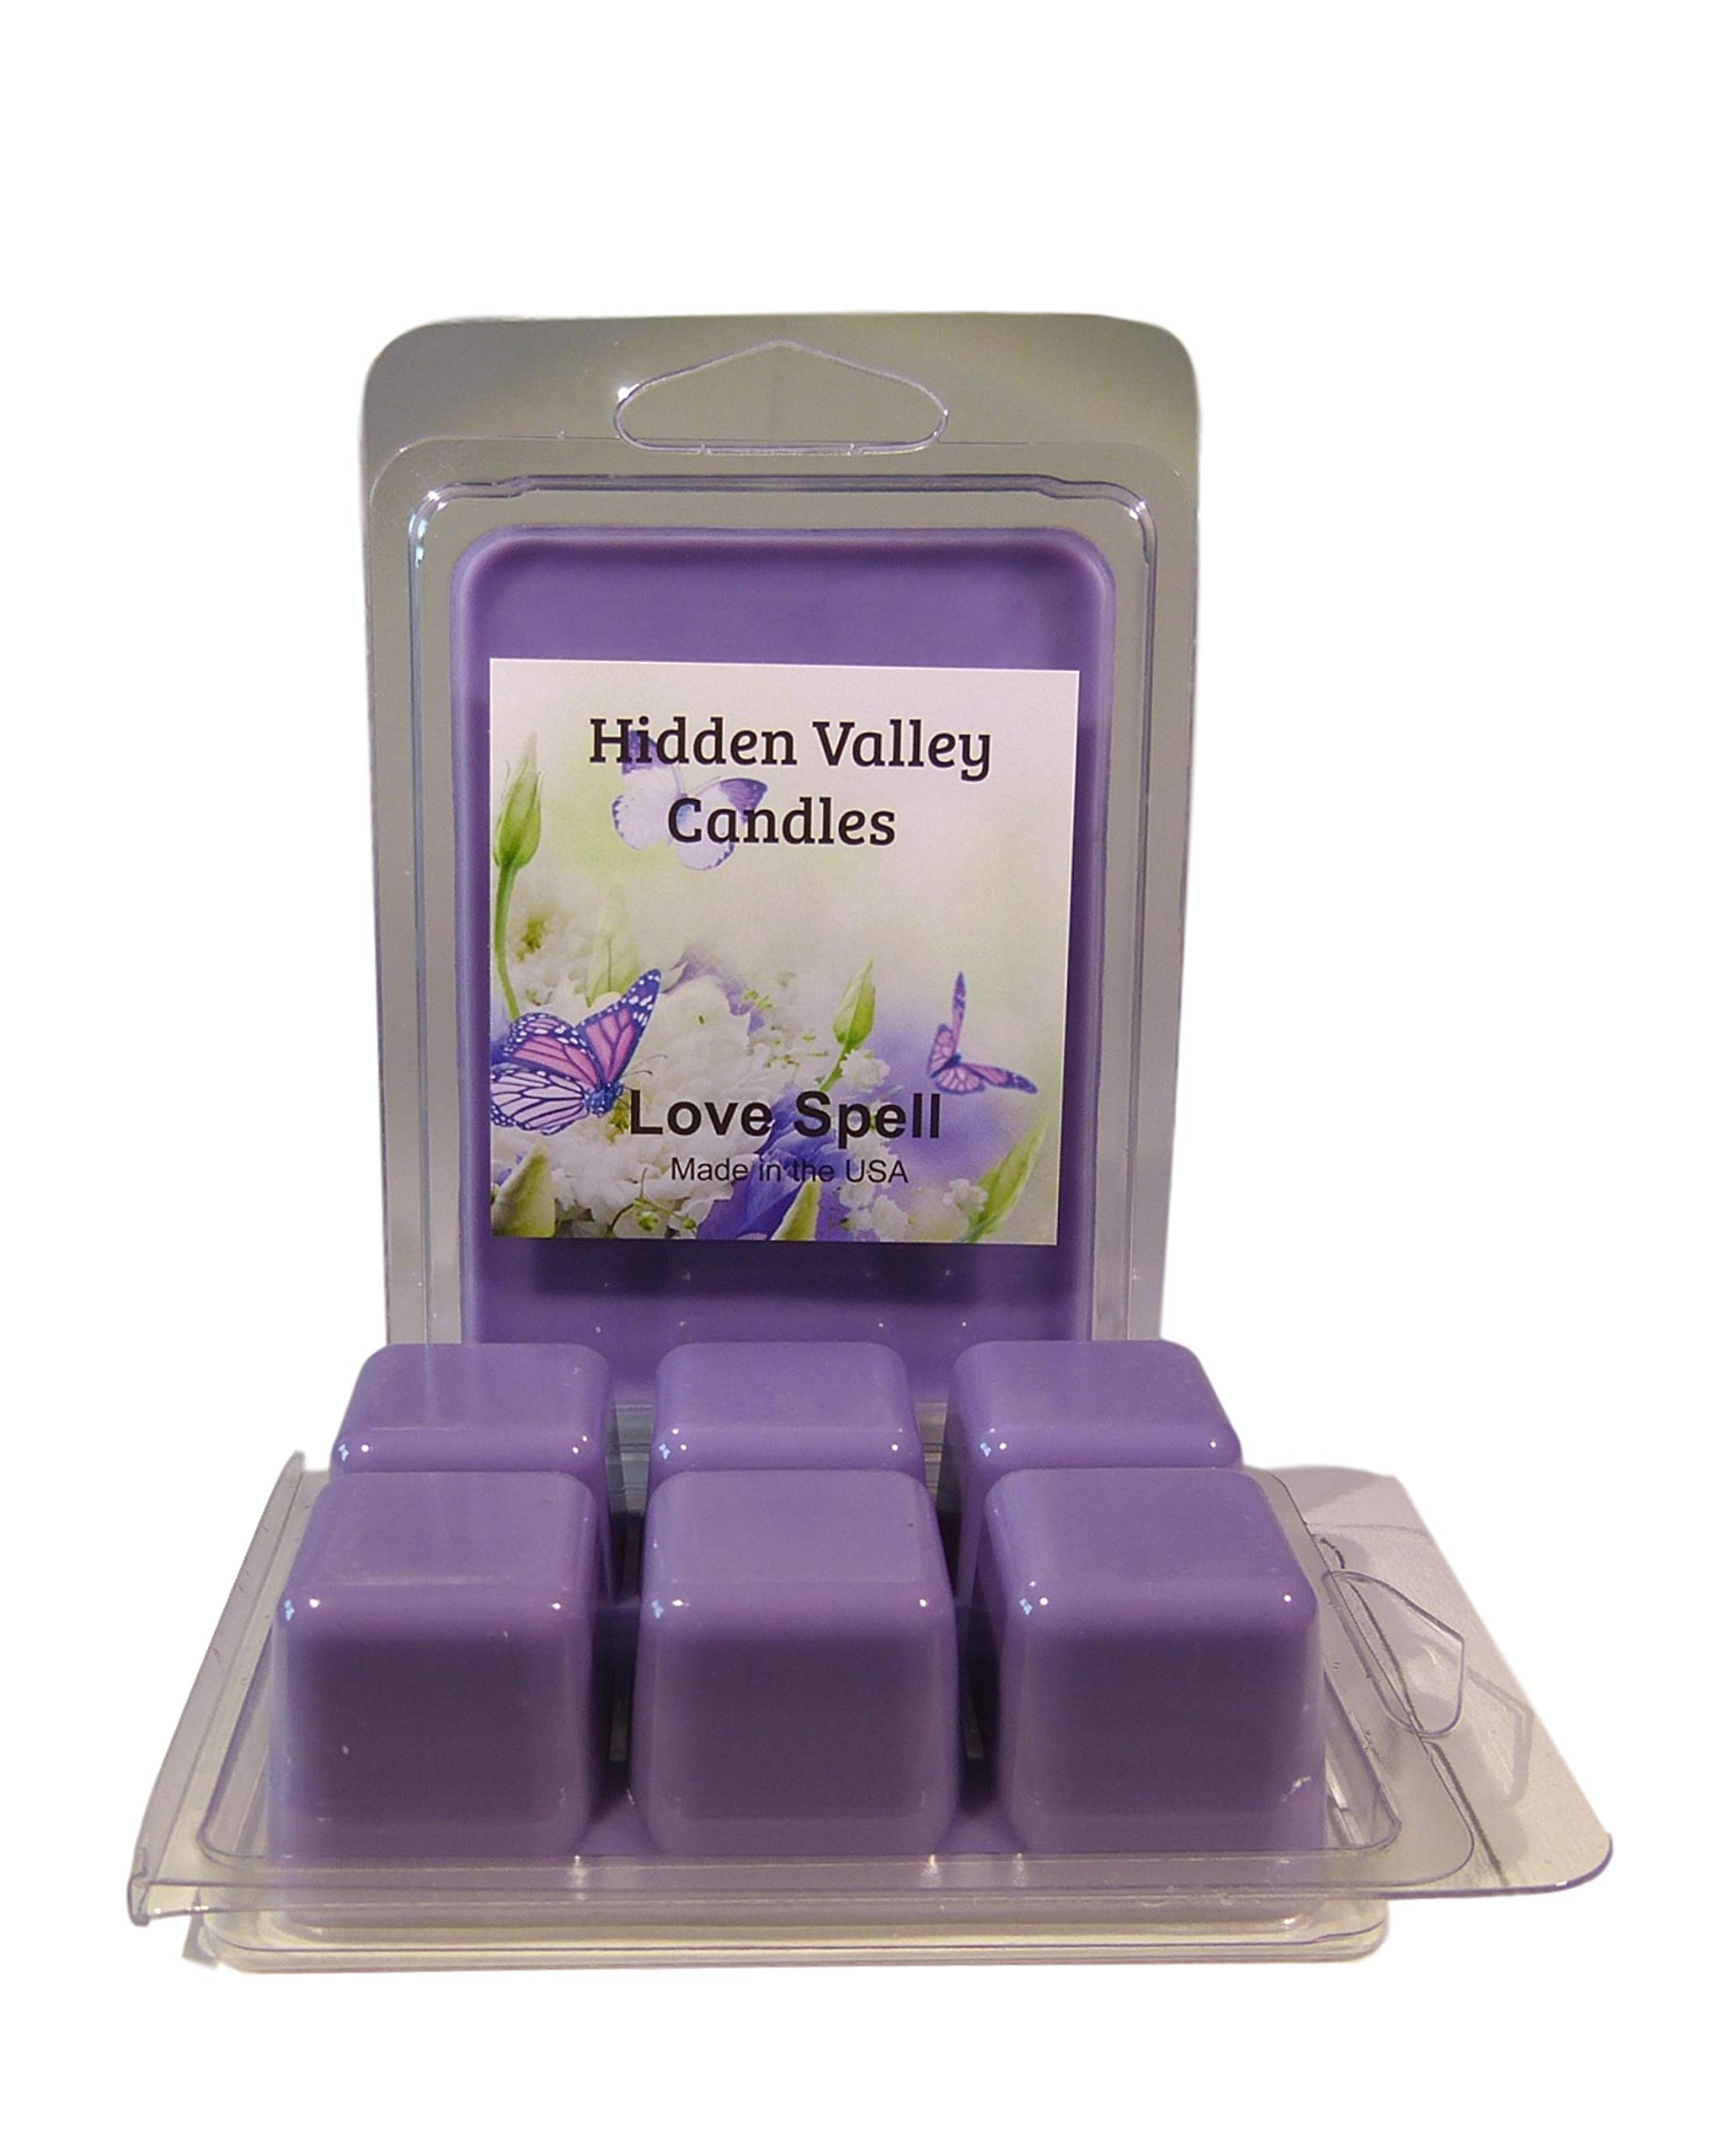 Love Spell ***2 Pack*** Double Scented Wax Melts (6.5oz). An instant classic - this fragrance is a luscious fusion of citrus, cherry blossom, hydrangea, apple and peach; with a hint of blondewood. You will receive 2 packs for a total 12 cubes which will t